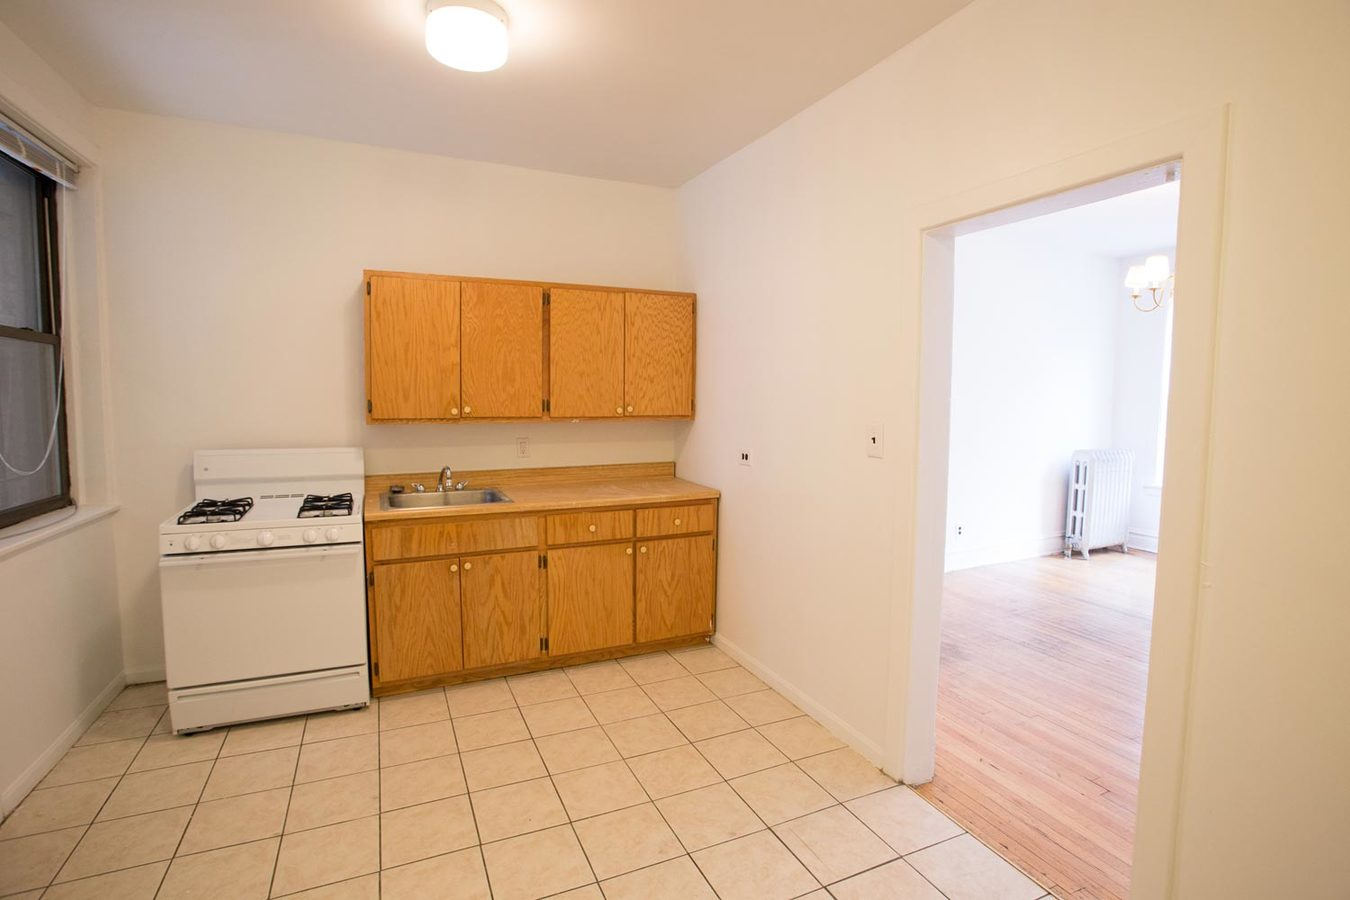 1 Bedroom 1 Bathroom Apartment for rent at 5416 S. Woodlawn Avenue in Chicago, IL